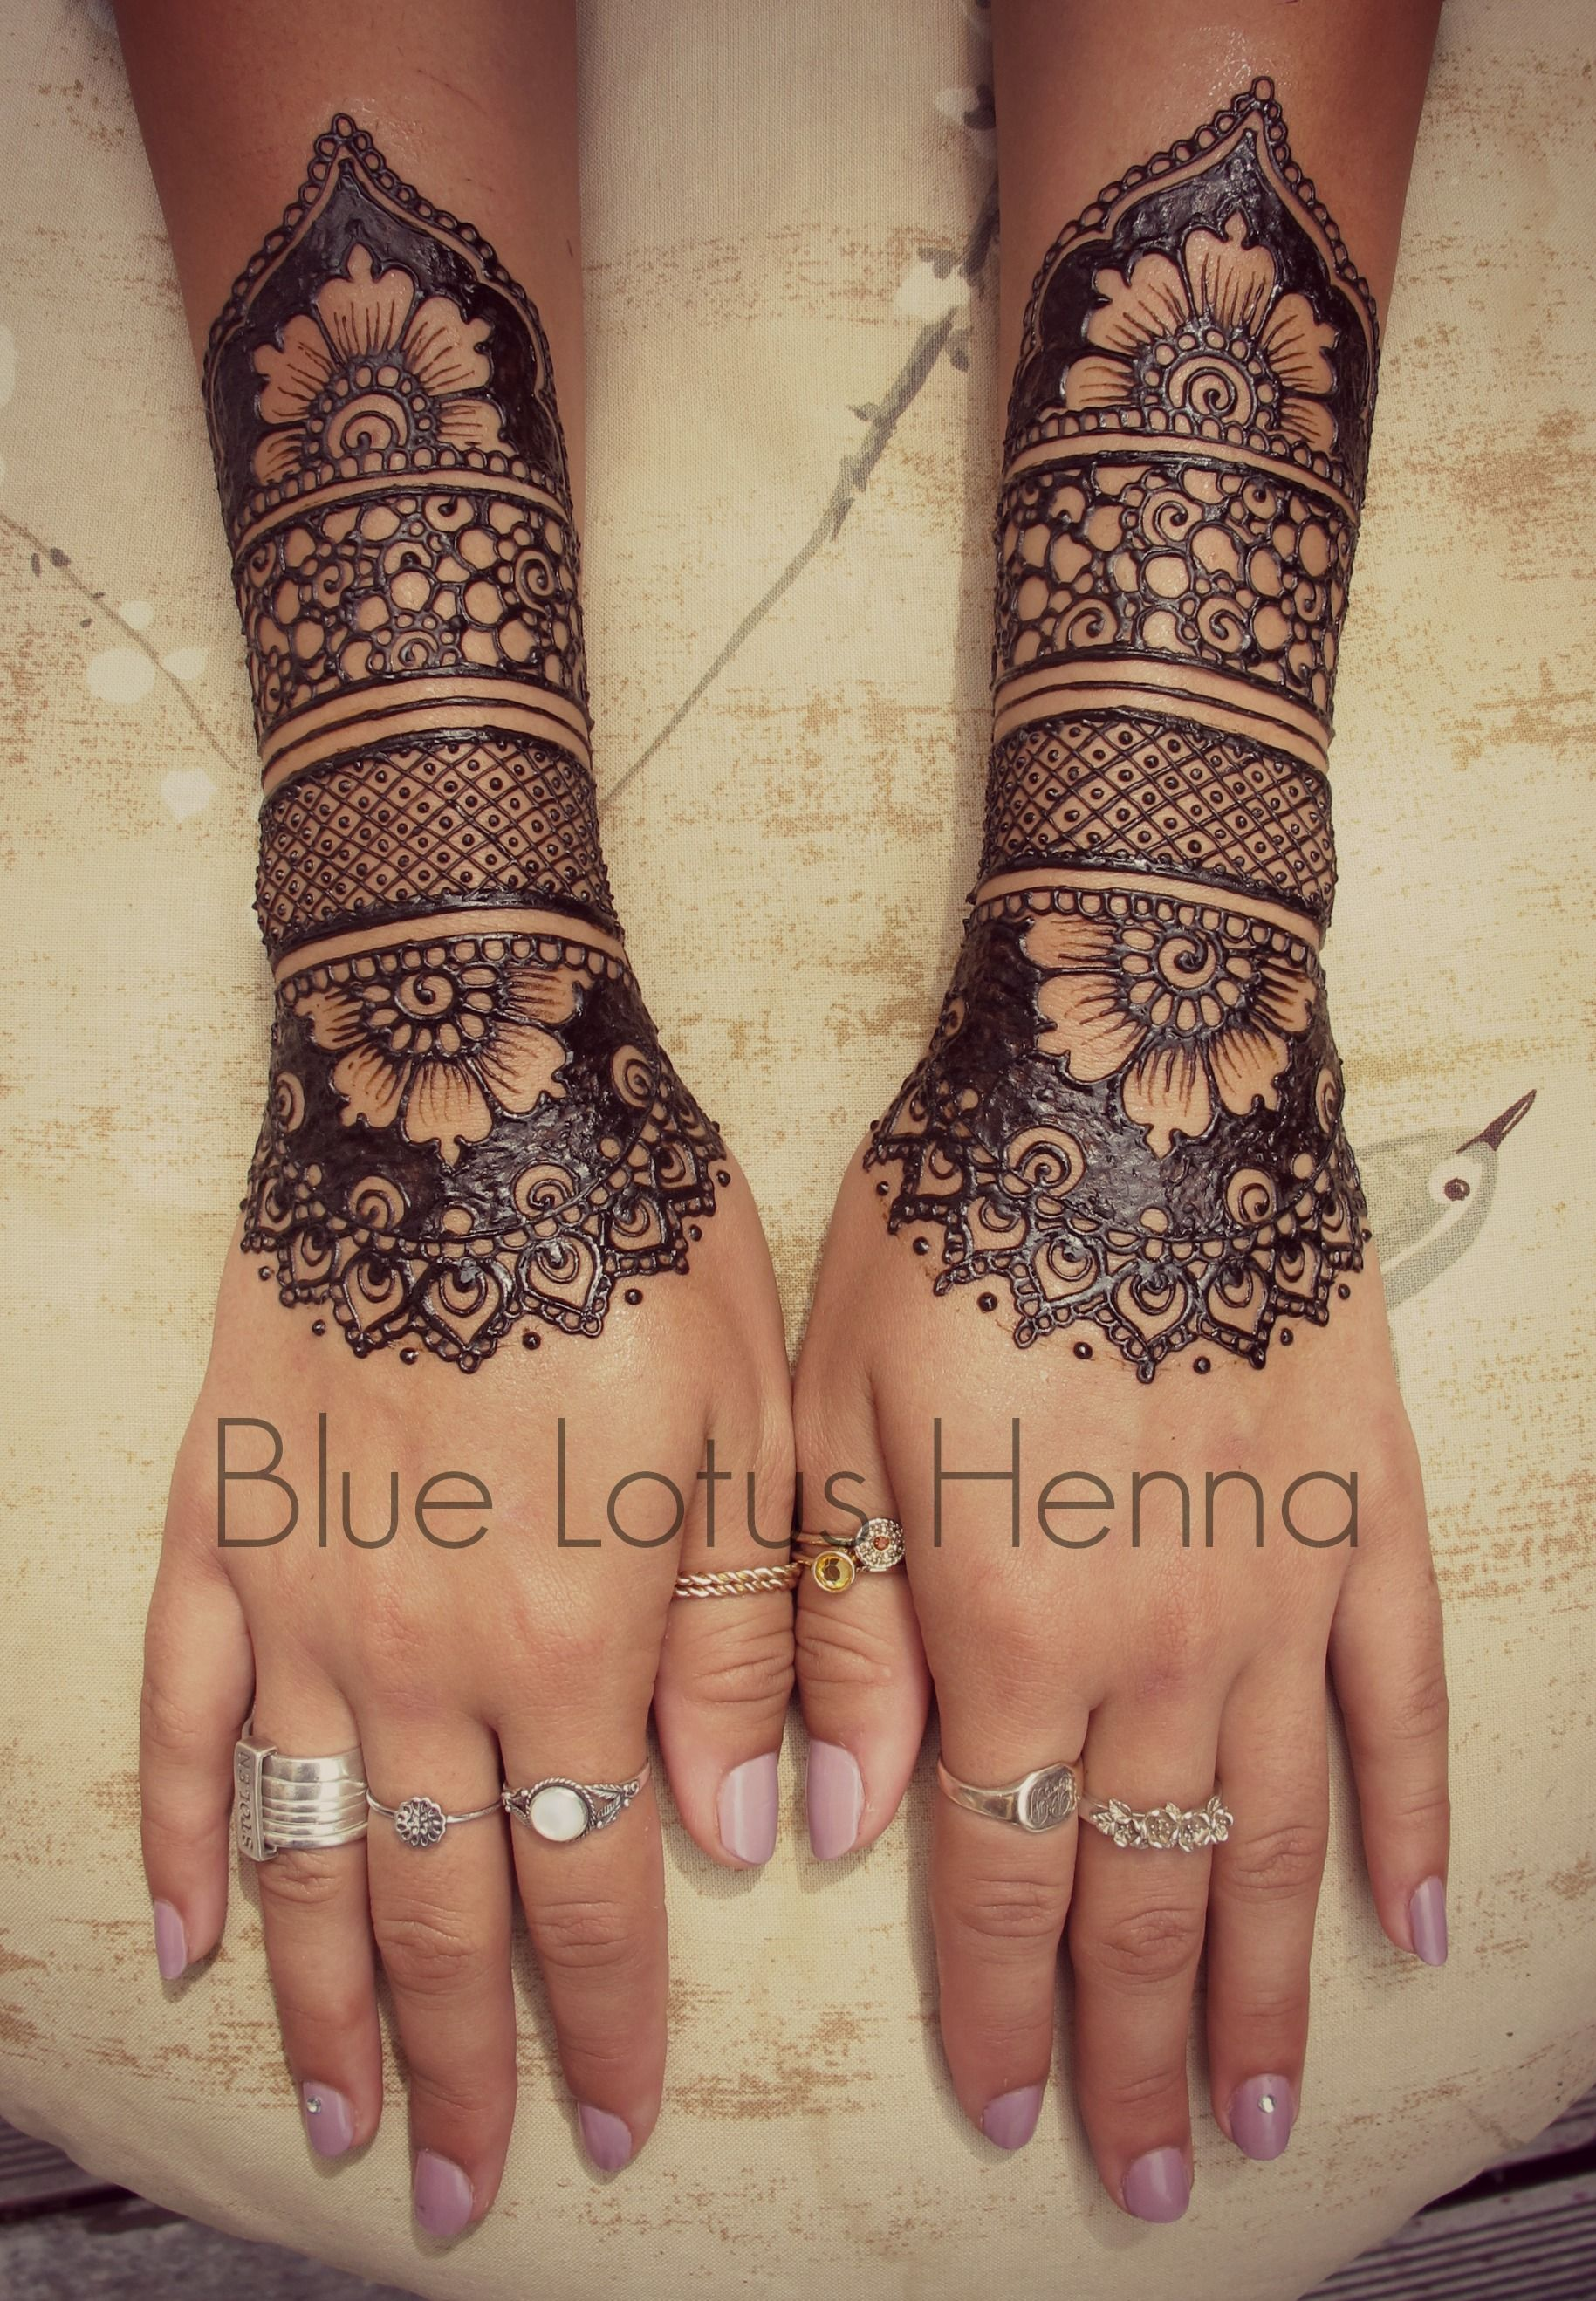 Henna Mehndi Tattoo Designs Idea For Wrist: 20 Beautful Henna Designs For Nikah